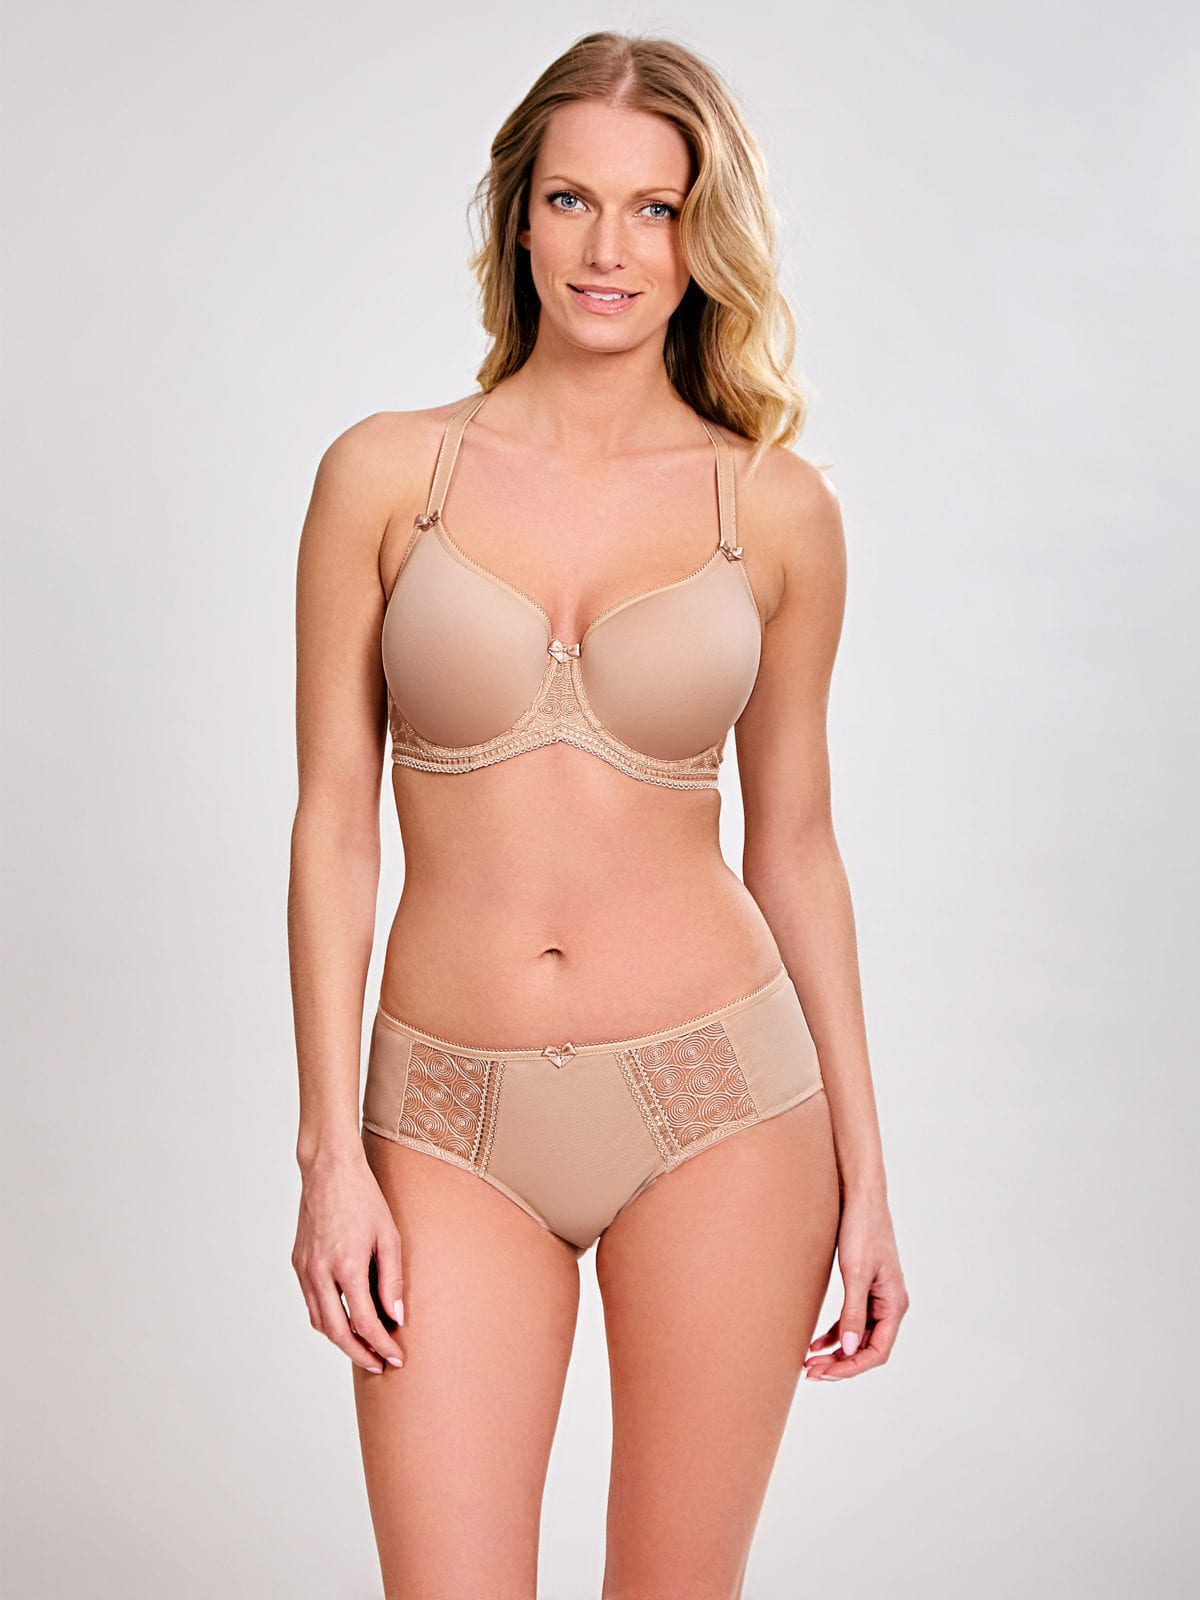 Бюстгальтеры 7961_076_Cari Spacer Bra Champagne Front Trade 5